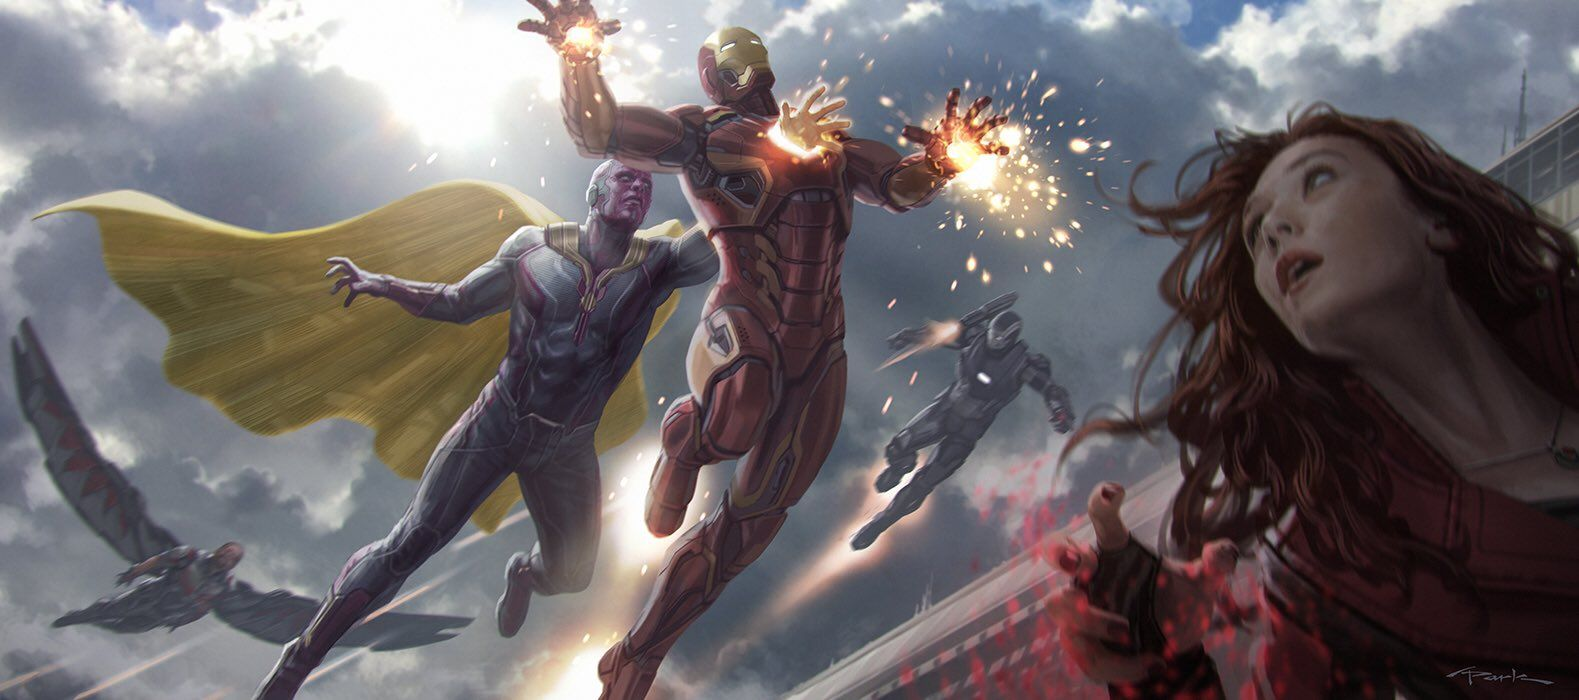 20 MCU Deleted (Or Unused) Scenes That Would Have Changed Everything